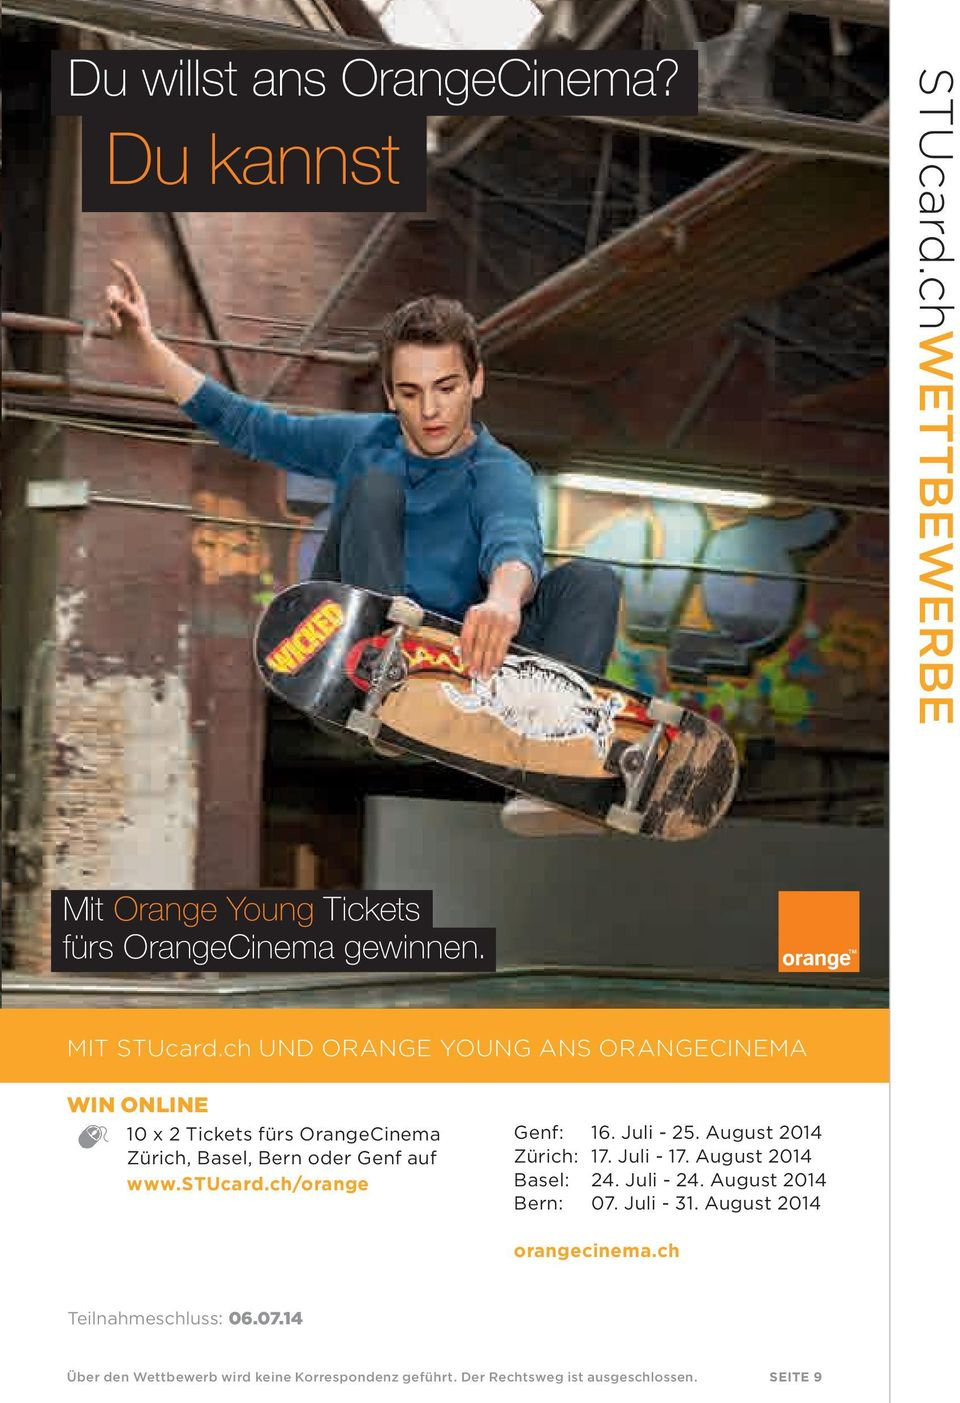 ch/orange Genf: 16. Juli - 25. August 2014 Zürich: 17. Juli - 17. August 2014 Basel: 24. Juli - 24. August 2014 Bern: 07. Juli - 31.